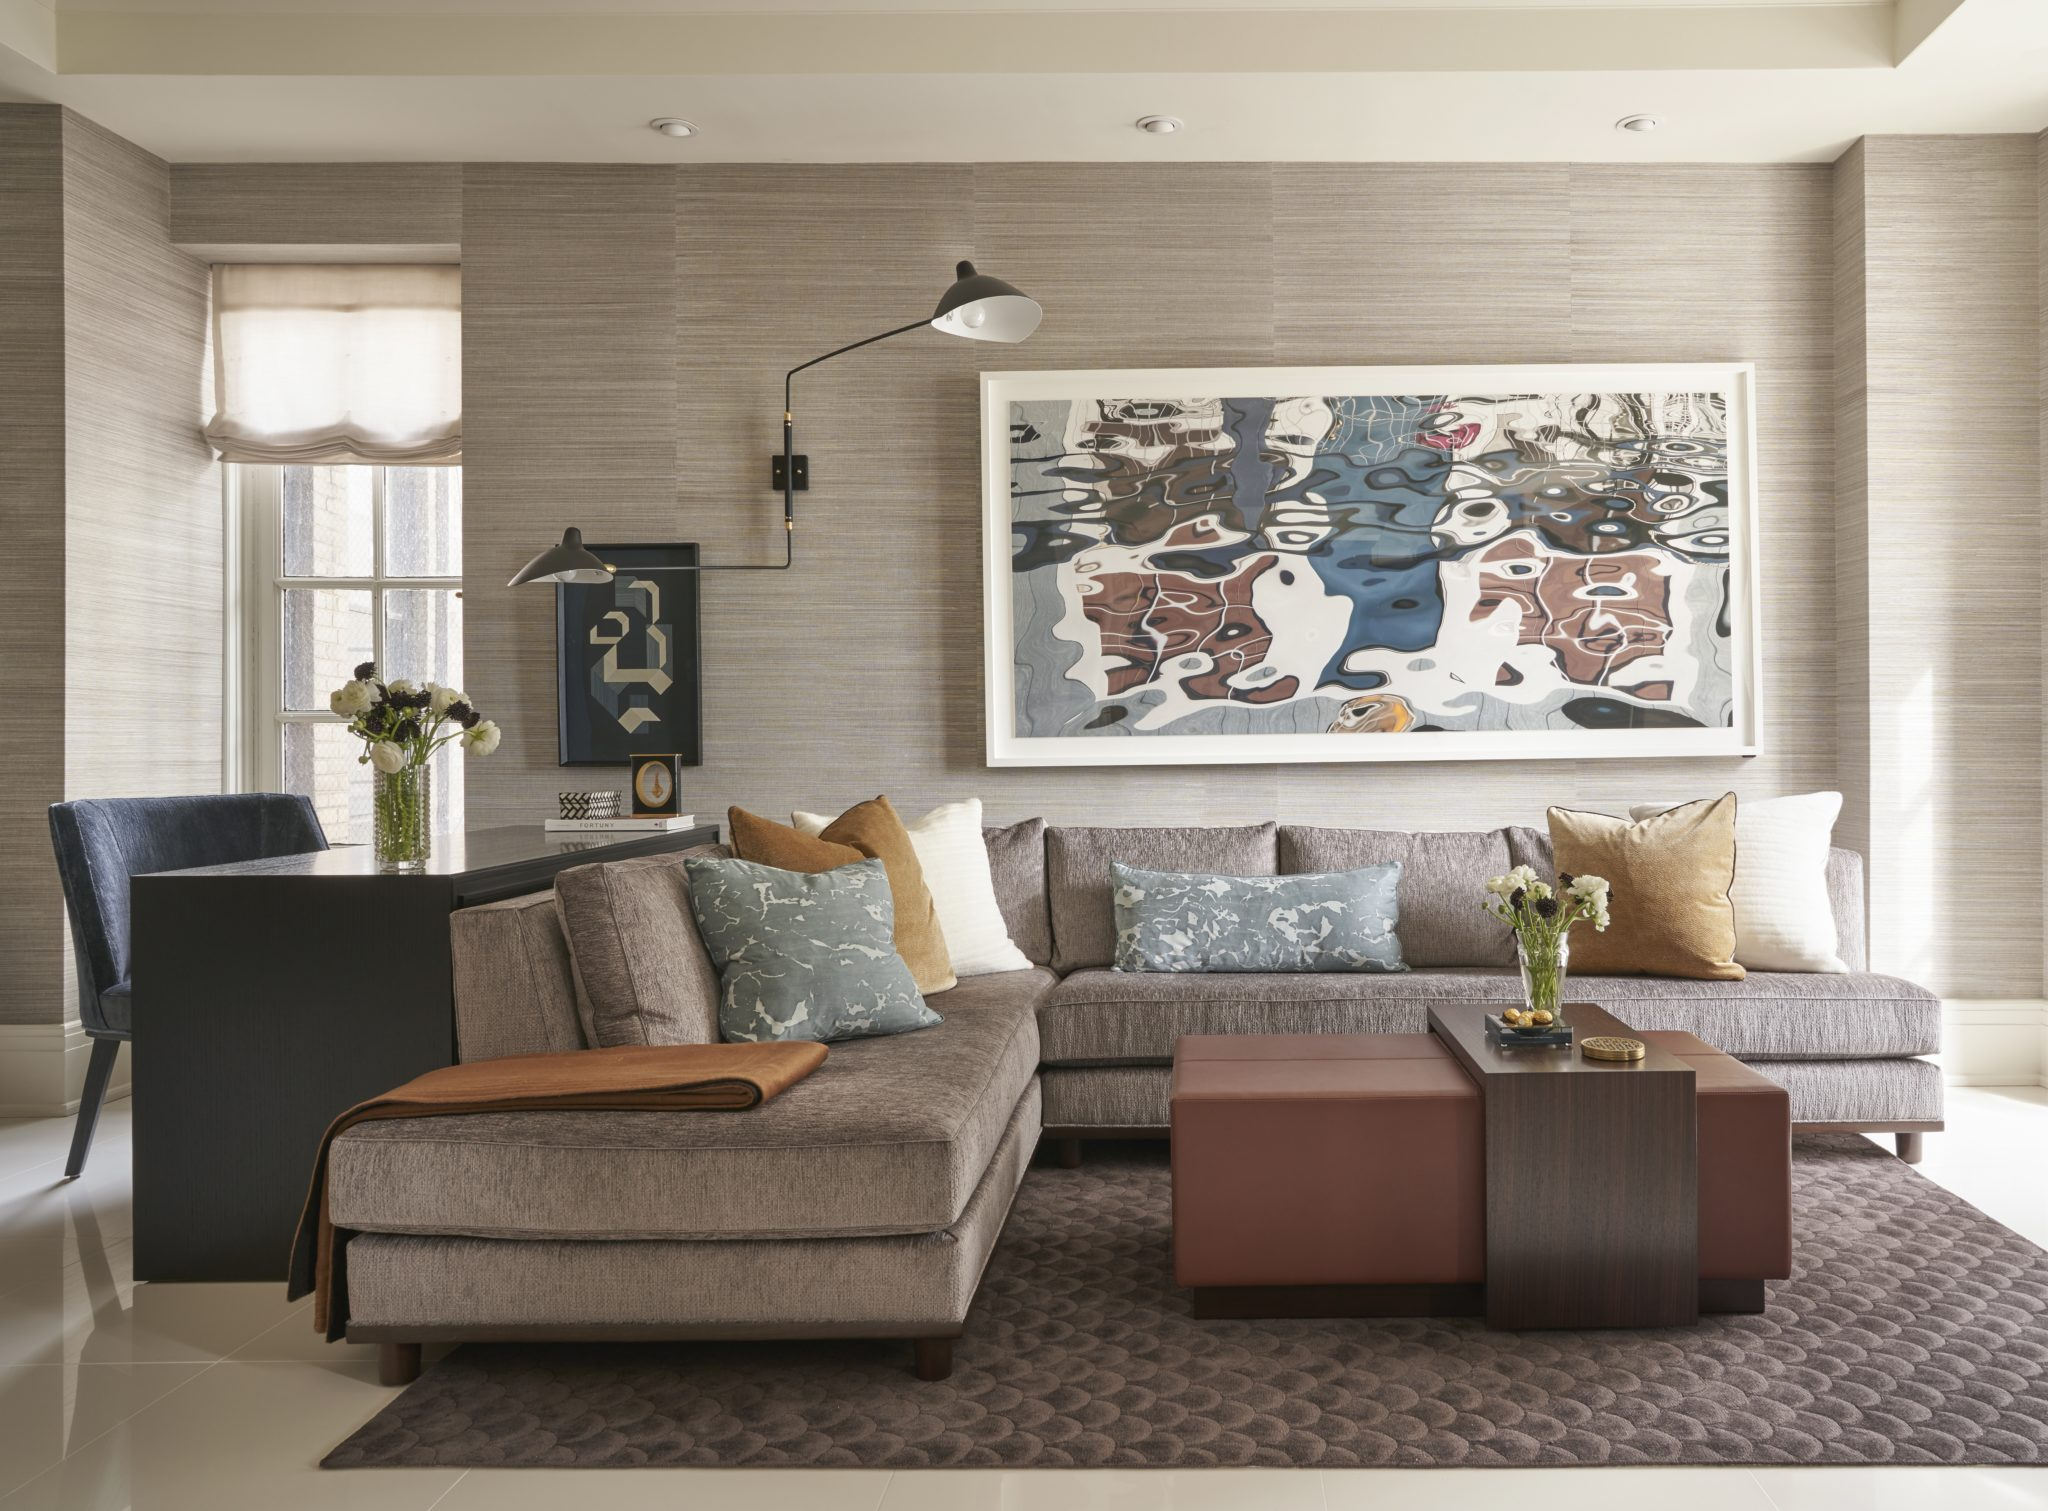 Q: How did you select the colors and textures for the living room?  A: We kept the large pieces in the room neutral and let the artwork dictate the splashes of color that are echoed in the decorative pillows.